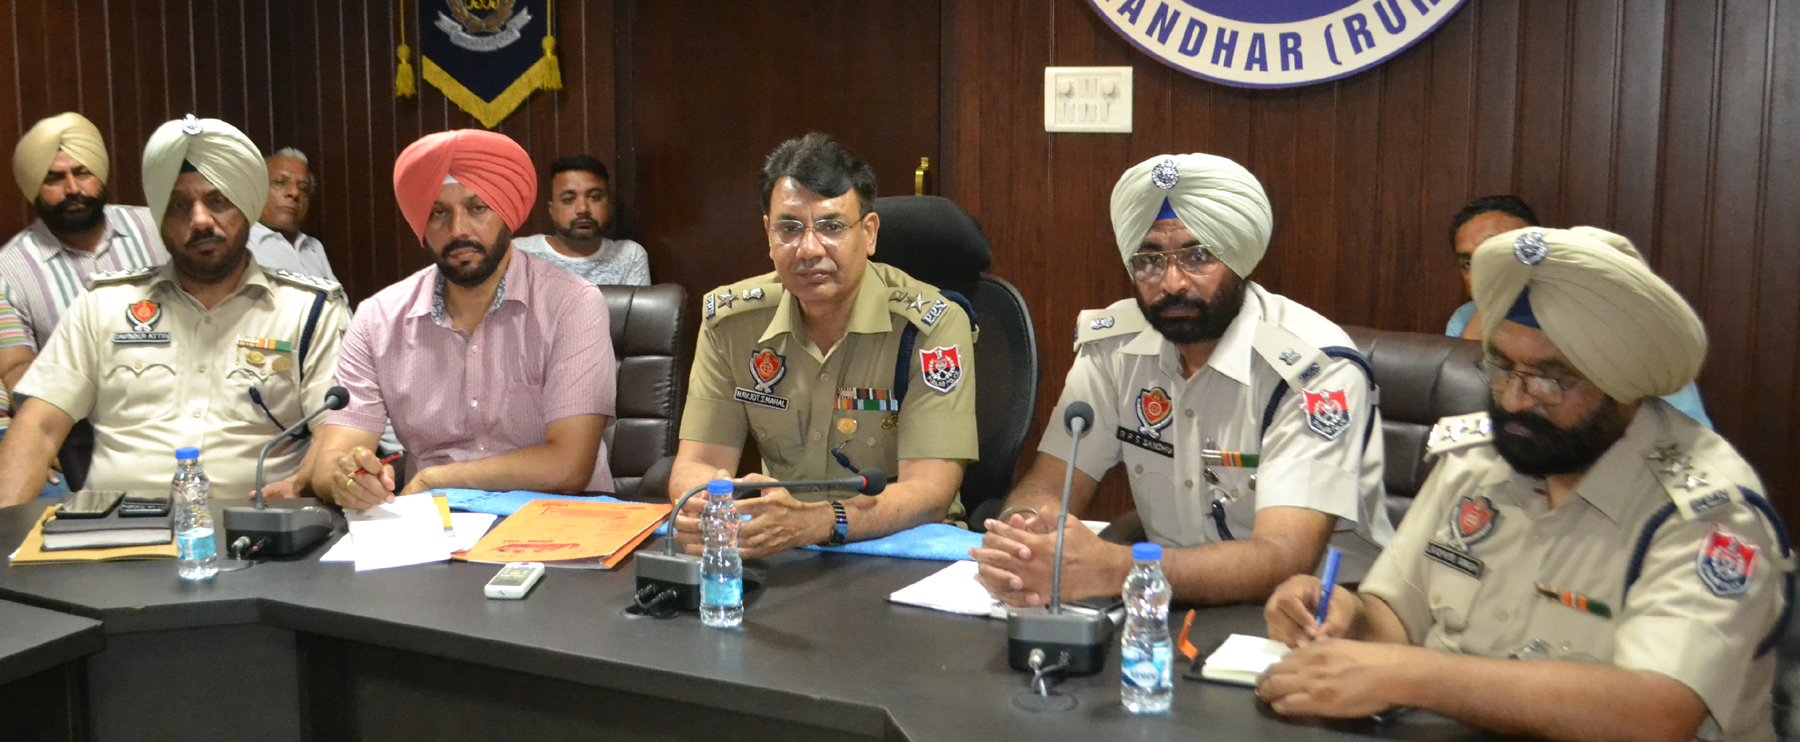 SSP WARNS CHEMISTS OF STRICT ACTION IF  FOUND SELLING THE DRUGS ILLEGALLY